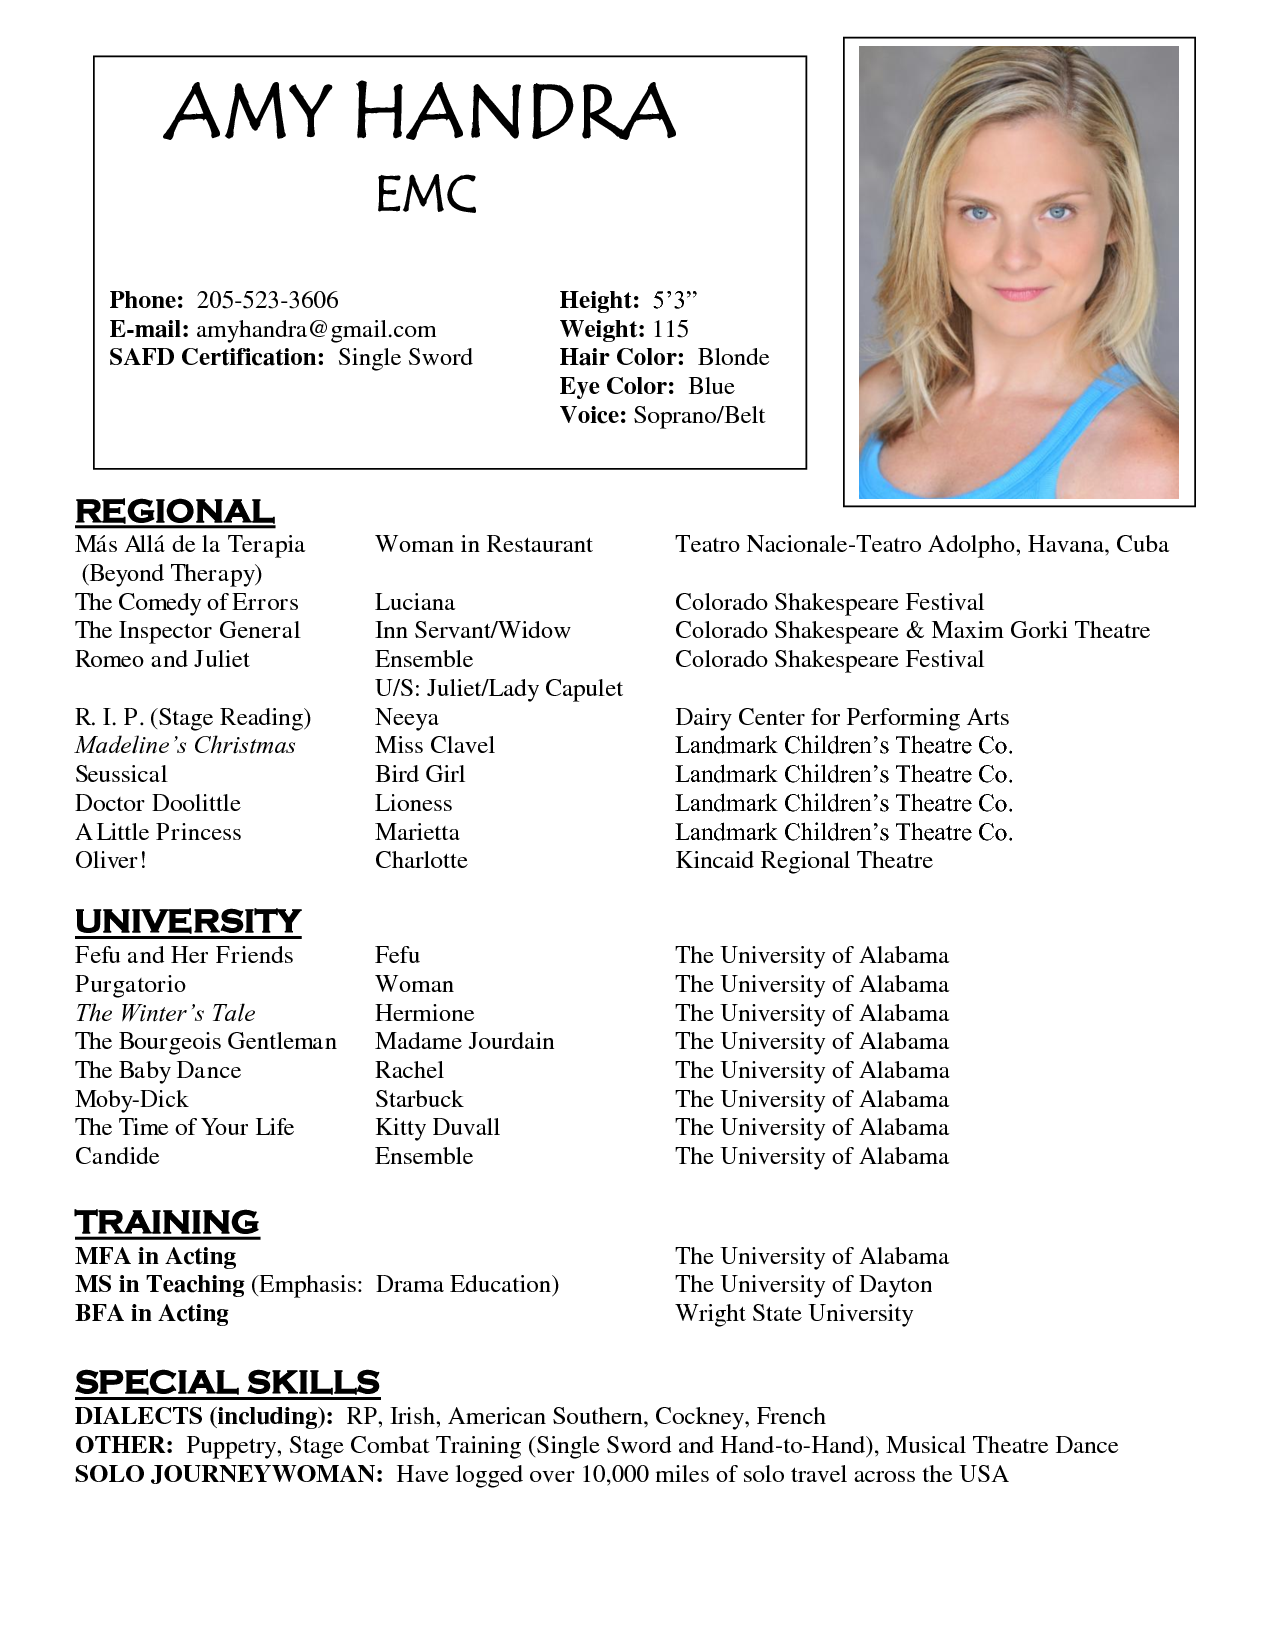 Sample Of Acting Resume Template - http://www.resumecareer.info ...